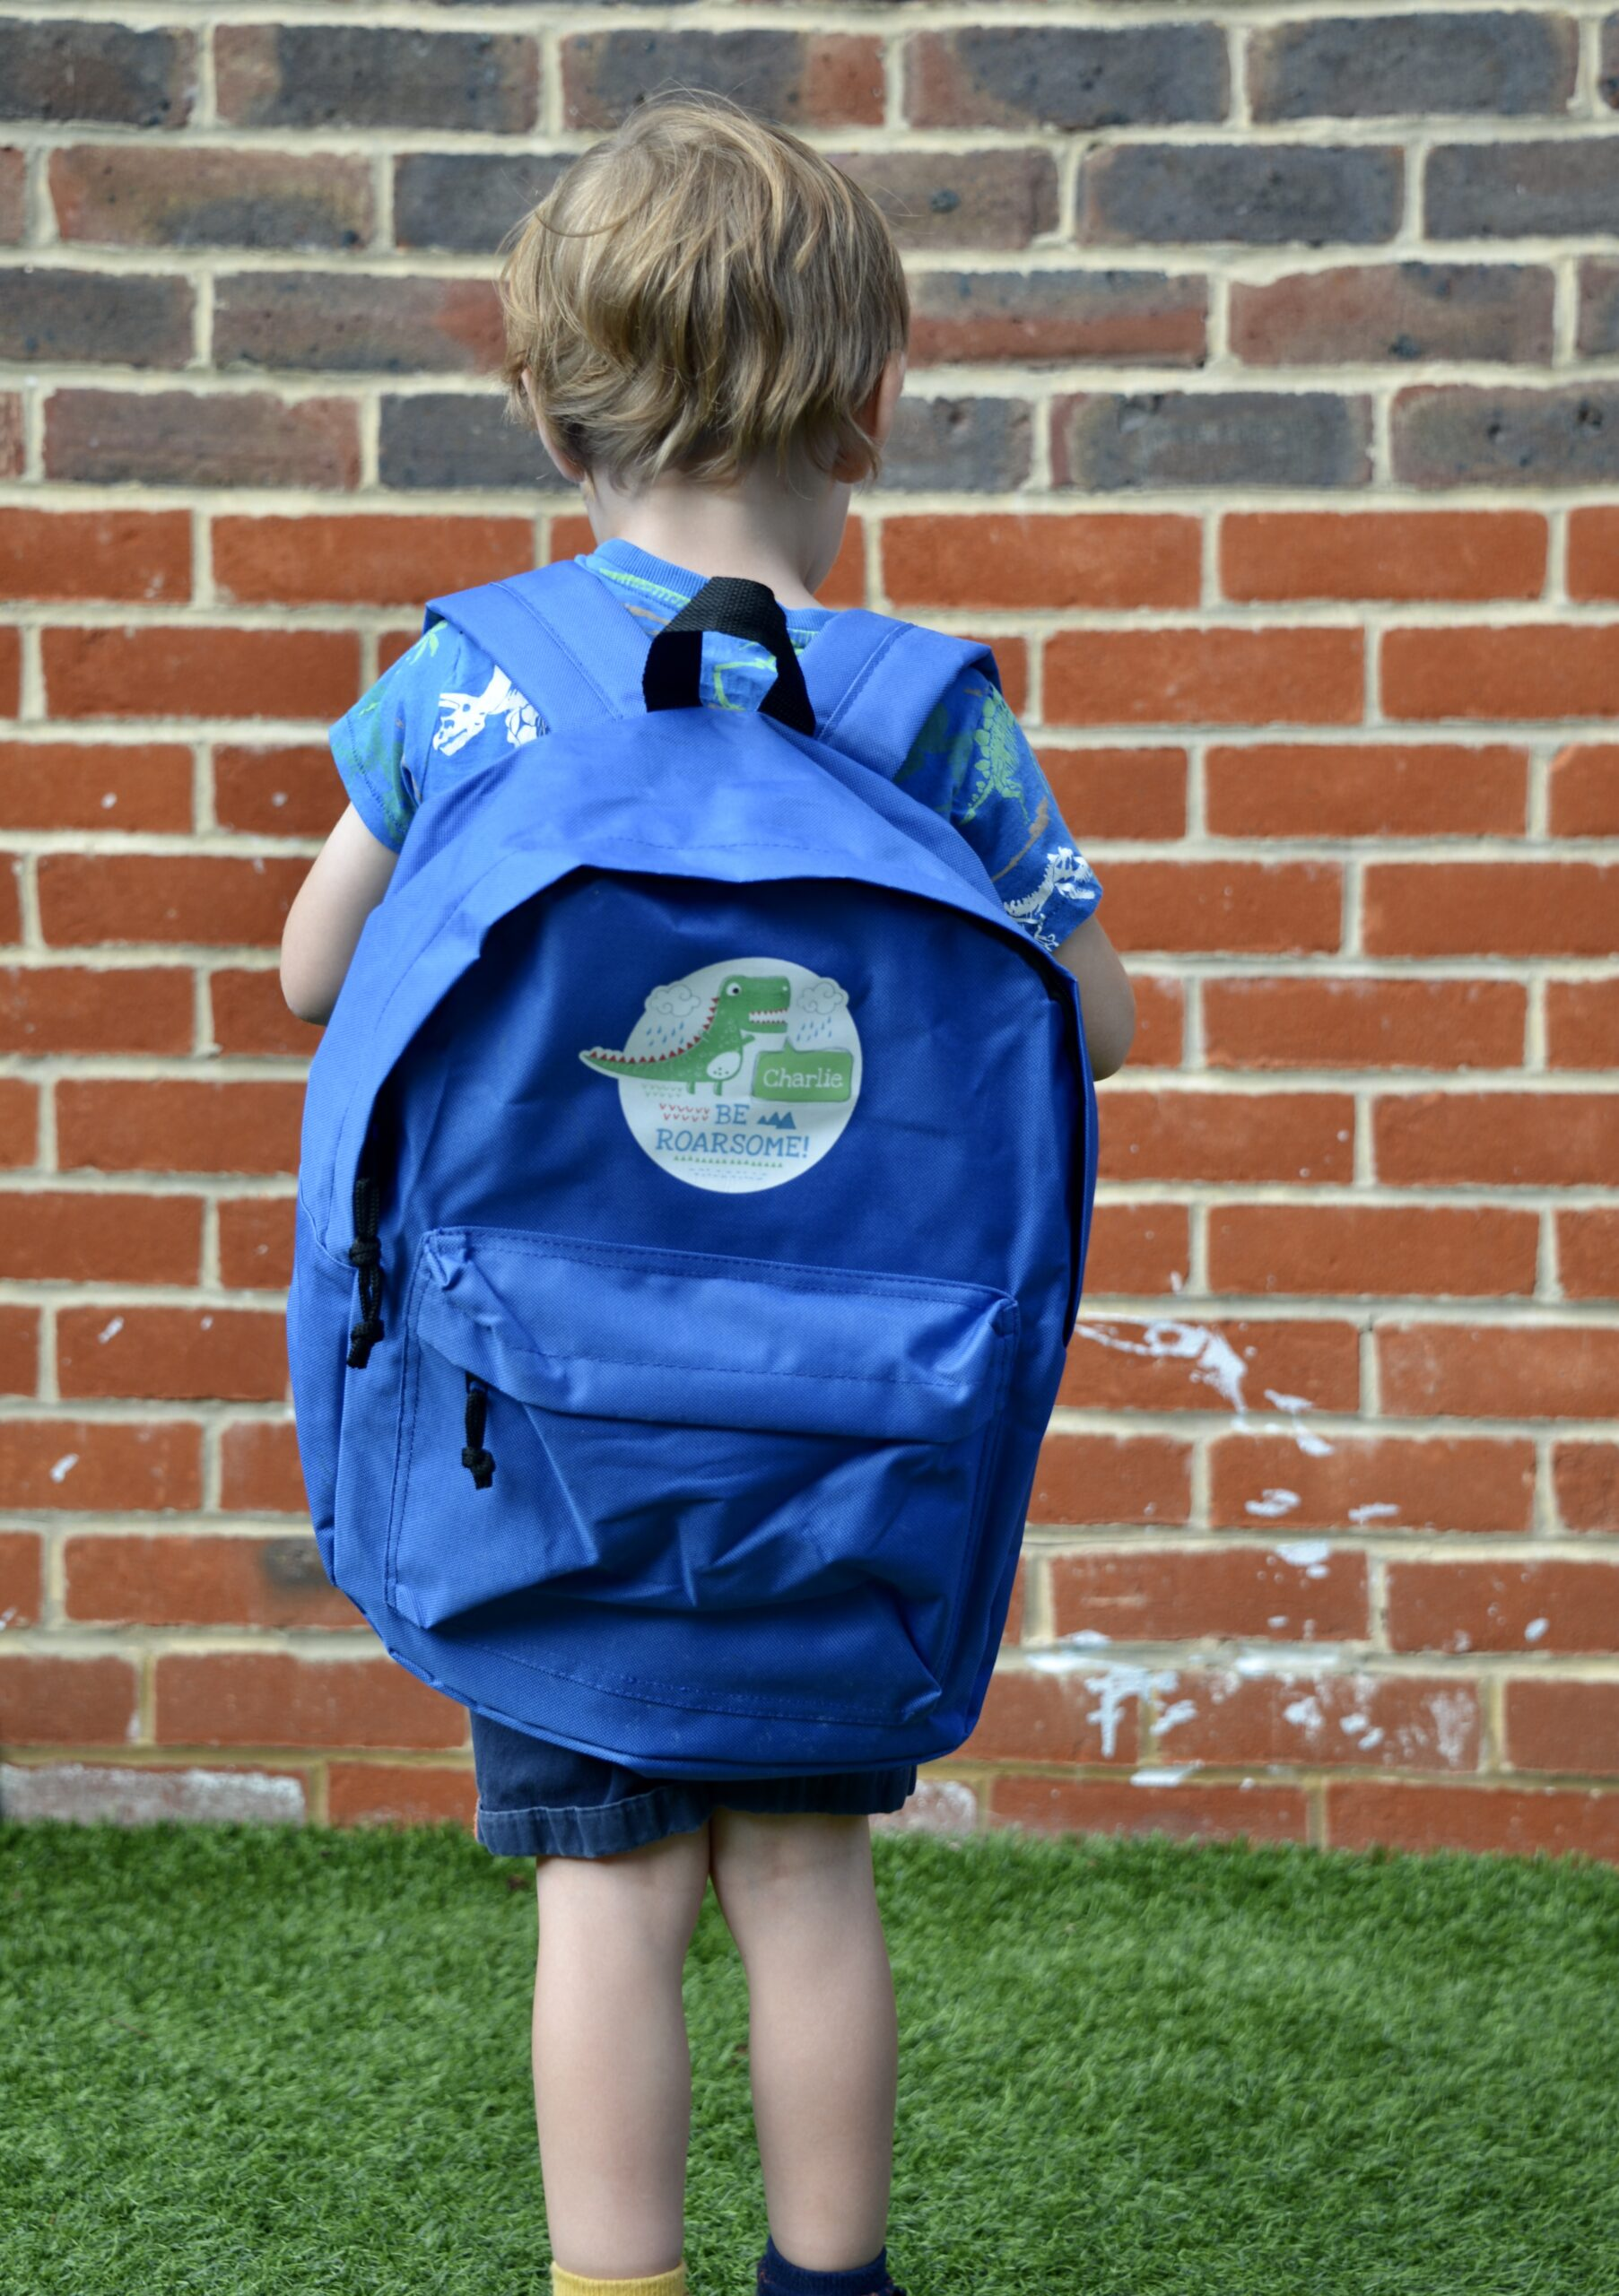 boy with a personalised backpack on his bag